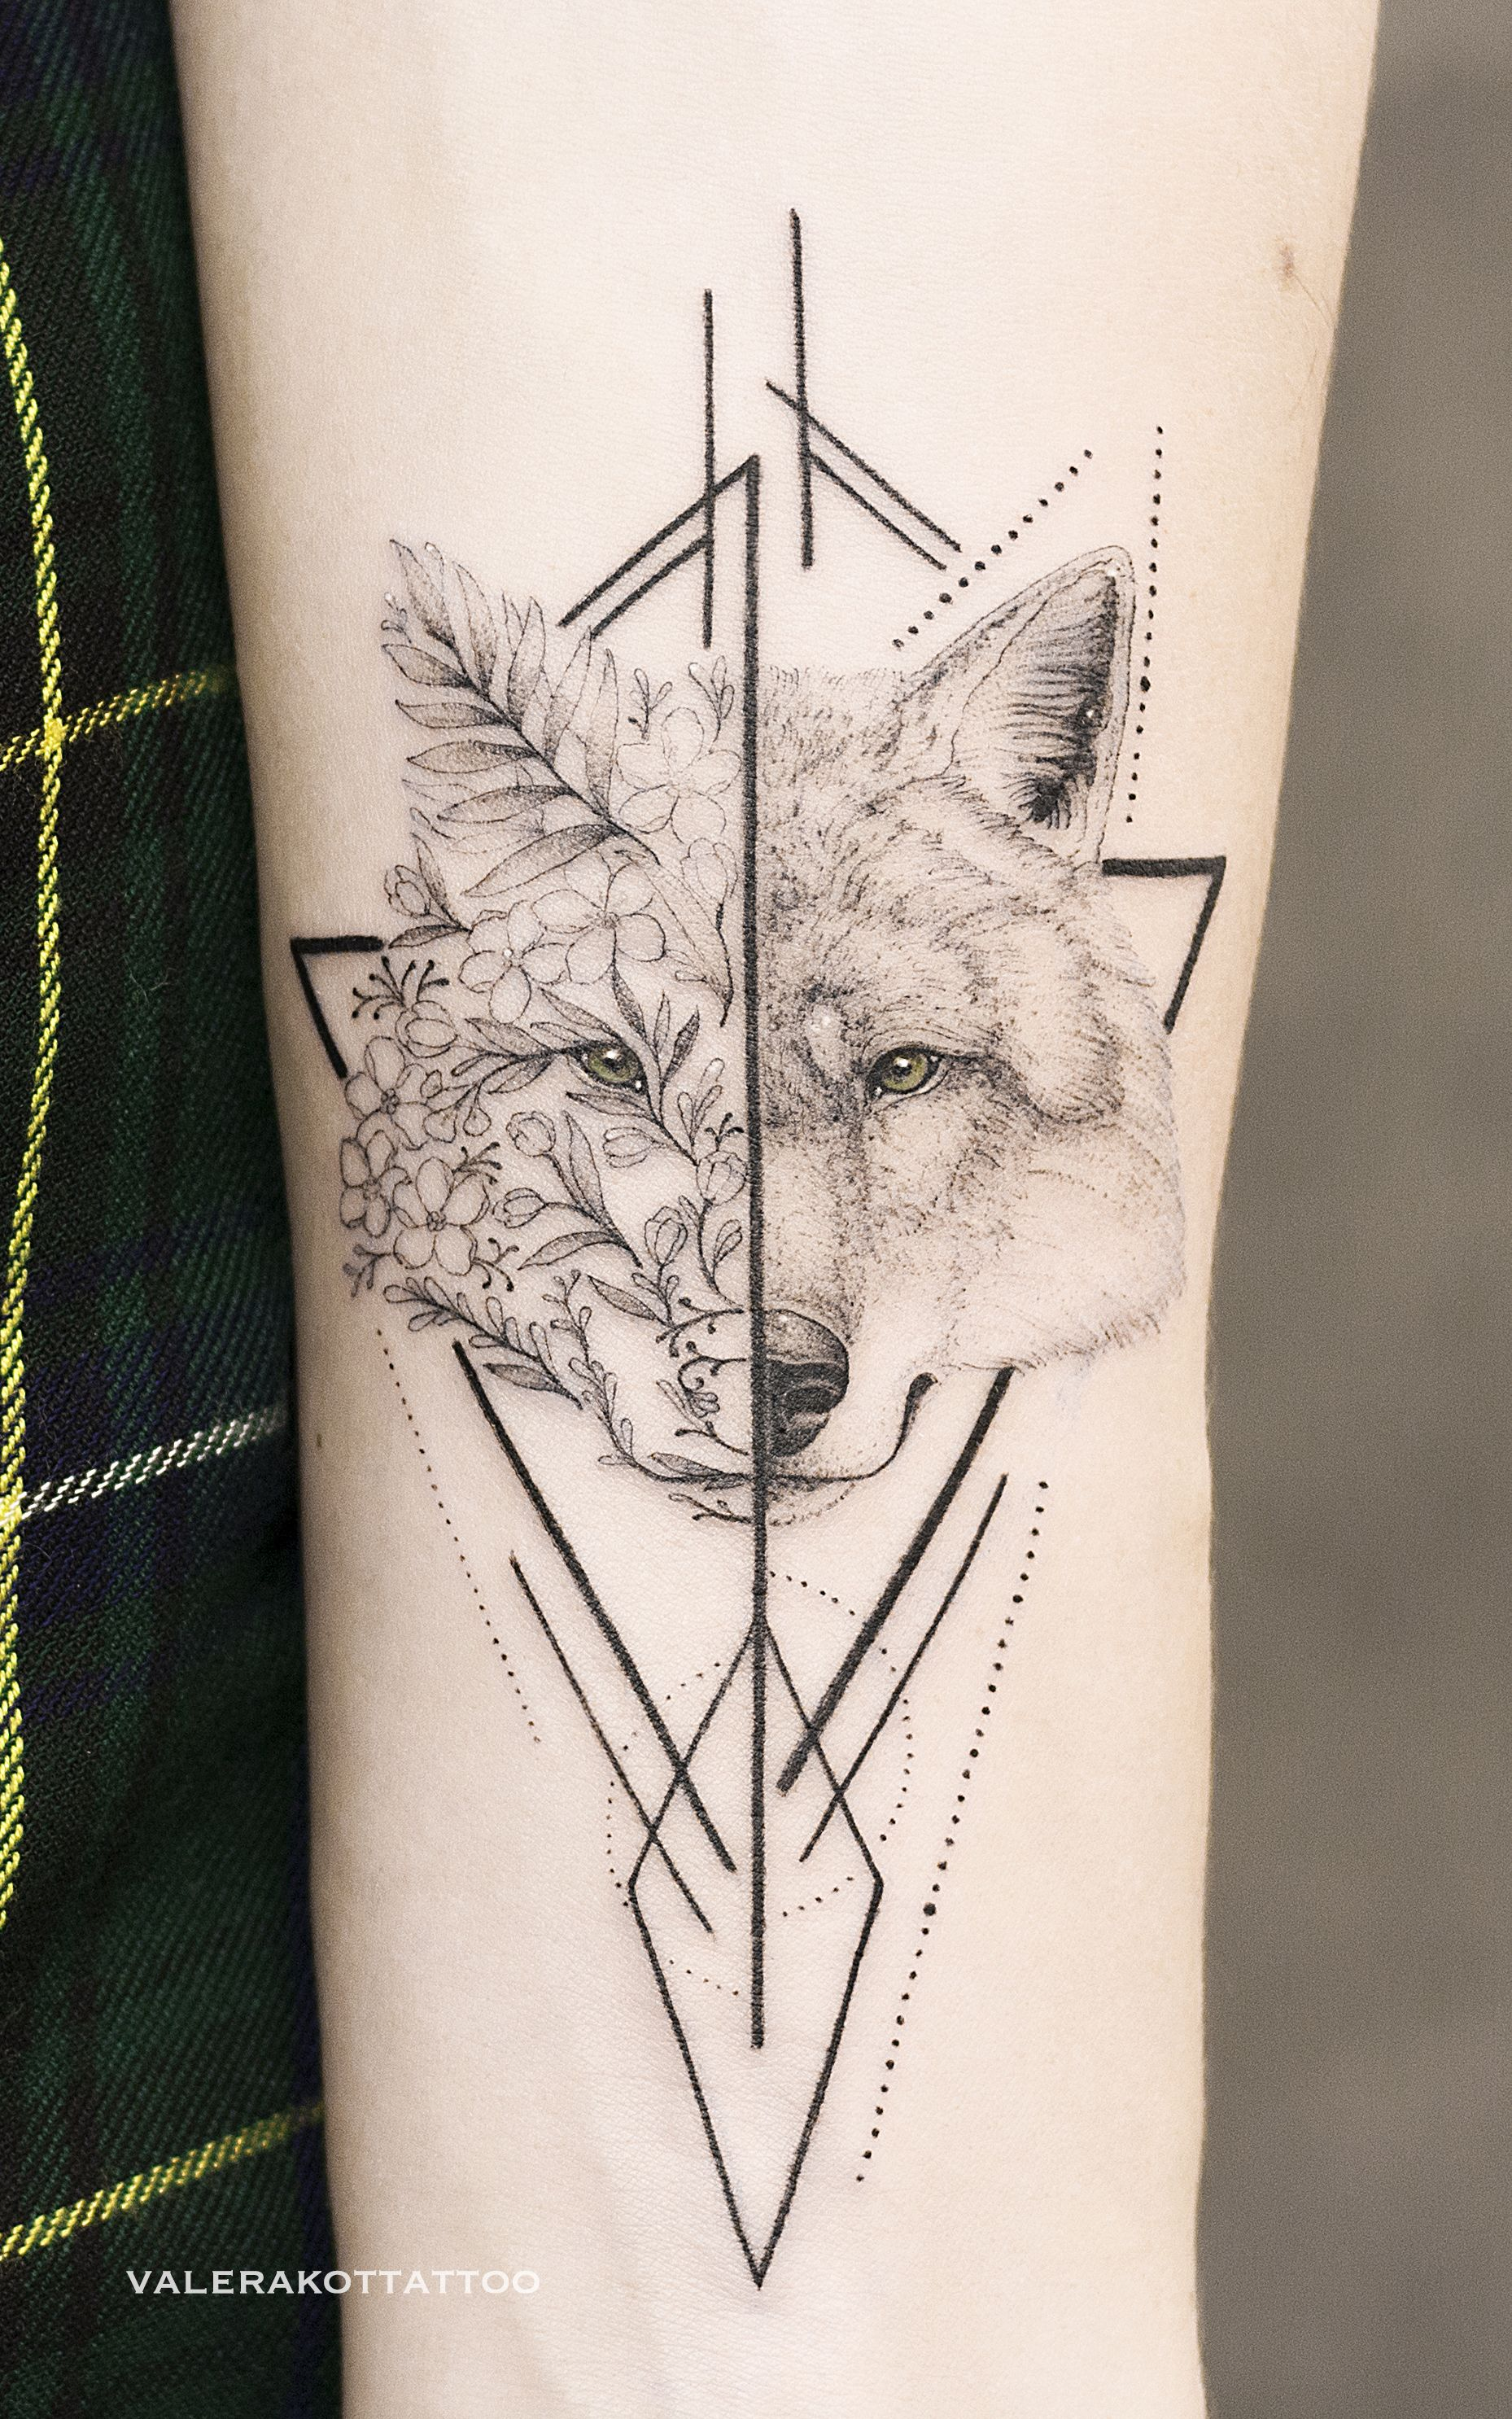 Black And White Tattoo With Flowers Wolf And Geometry On Arm Amazing Tattoo Ideas Geometric Tattoo Tattoos Tattoo Desings